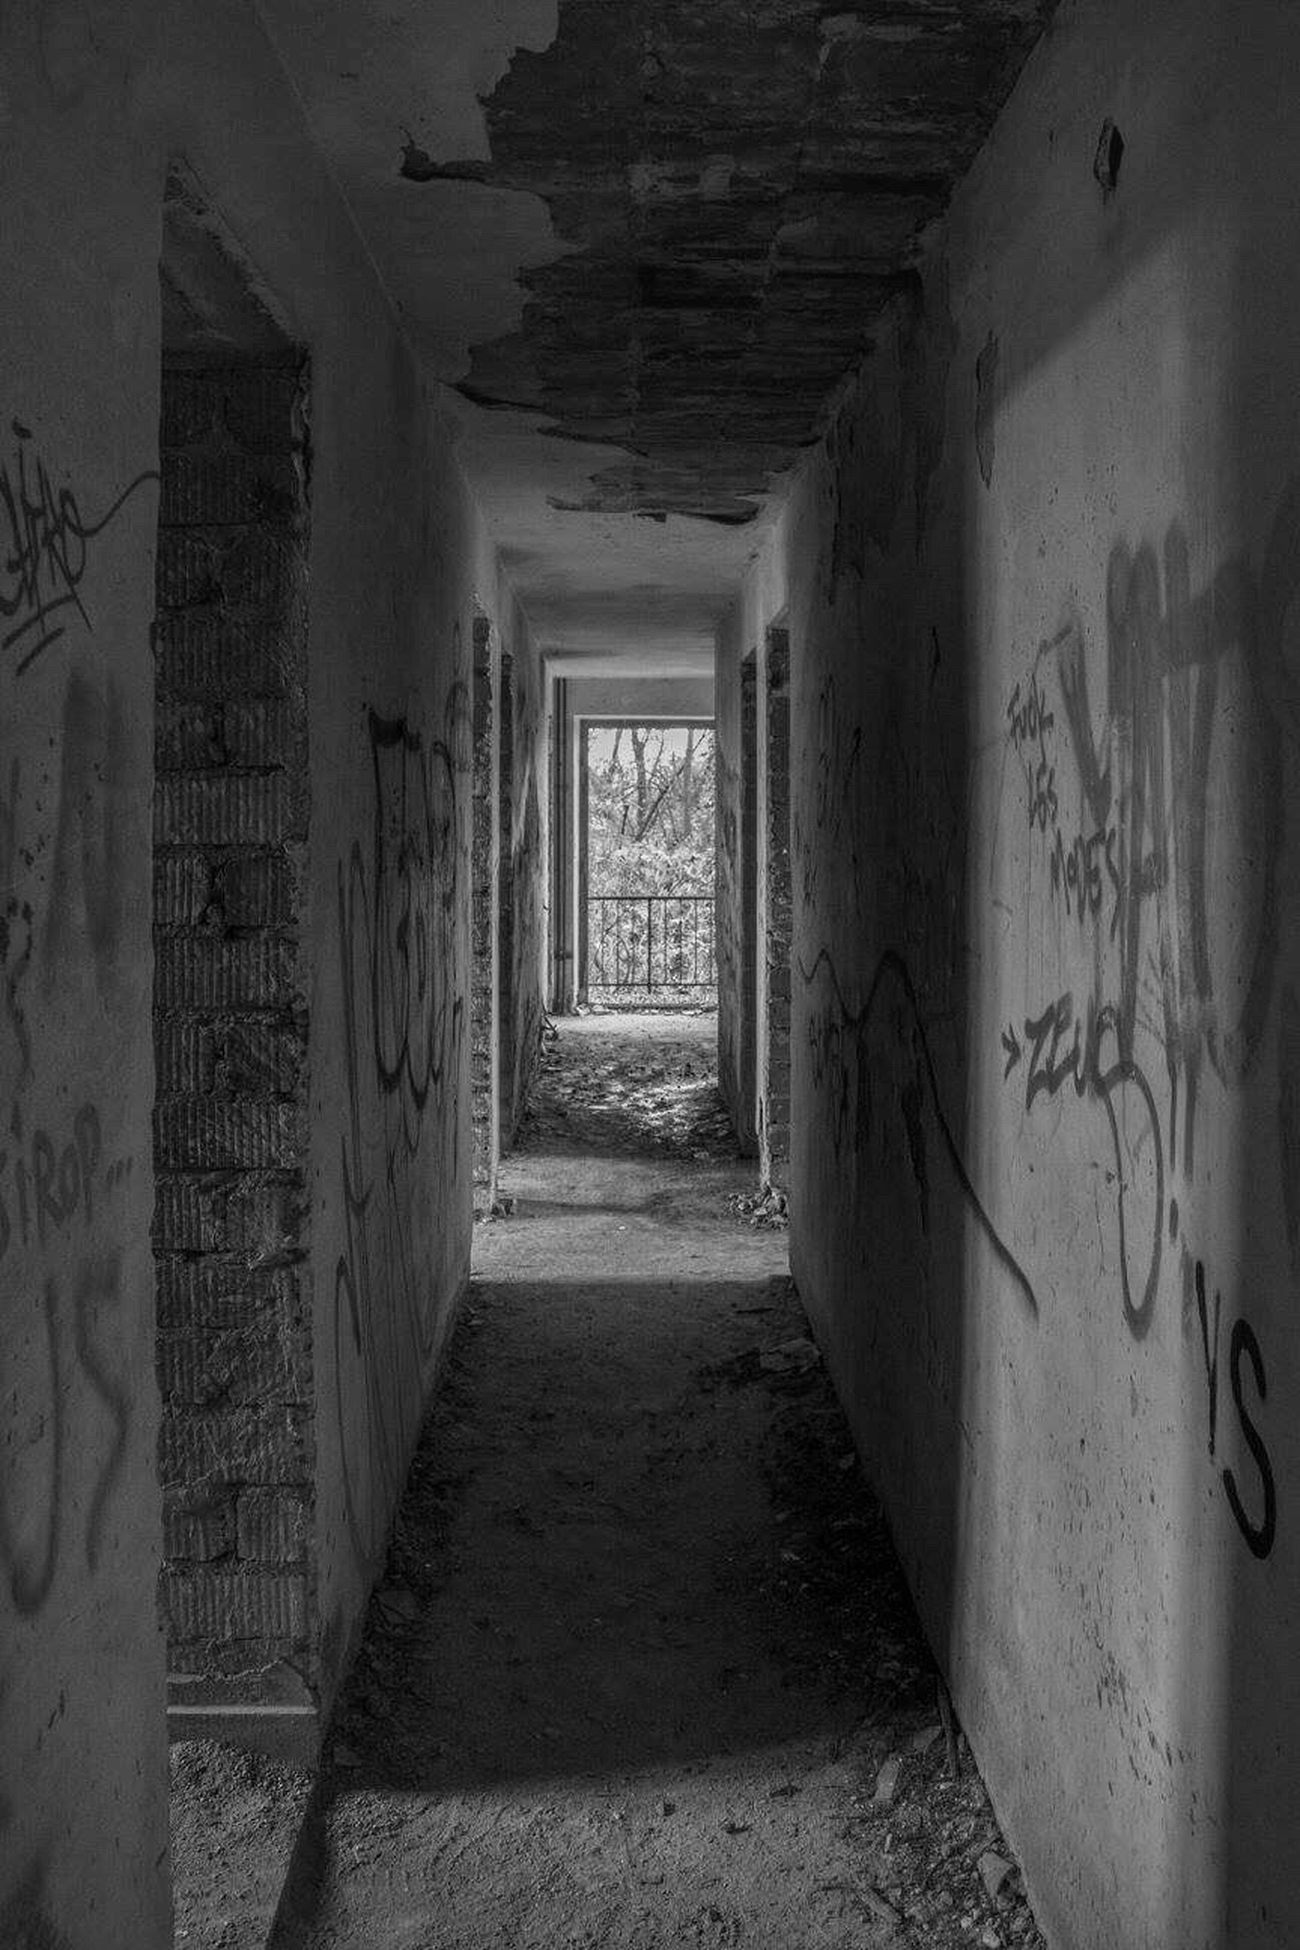 The Way Forward Corridor Abandoned Architecture Damaged Abandoned Places Abandoned Buildings Canonphotography Tadaa Community Urbex Lost Places Abandoned Hotel EyeEm Abandoned Urbexphotography Beauty Of Decay Architecture Blackandwhite Blackandwhite Photography